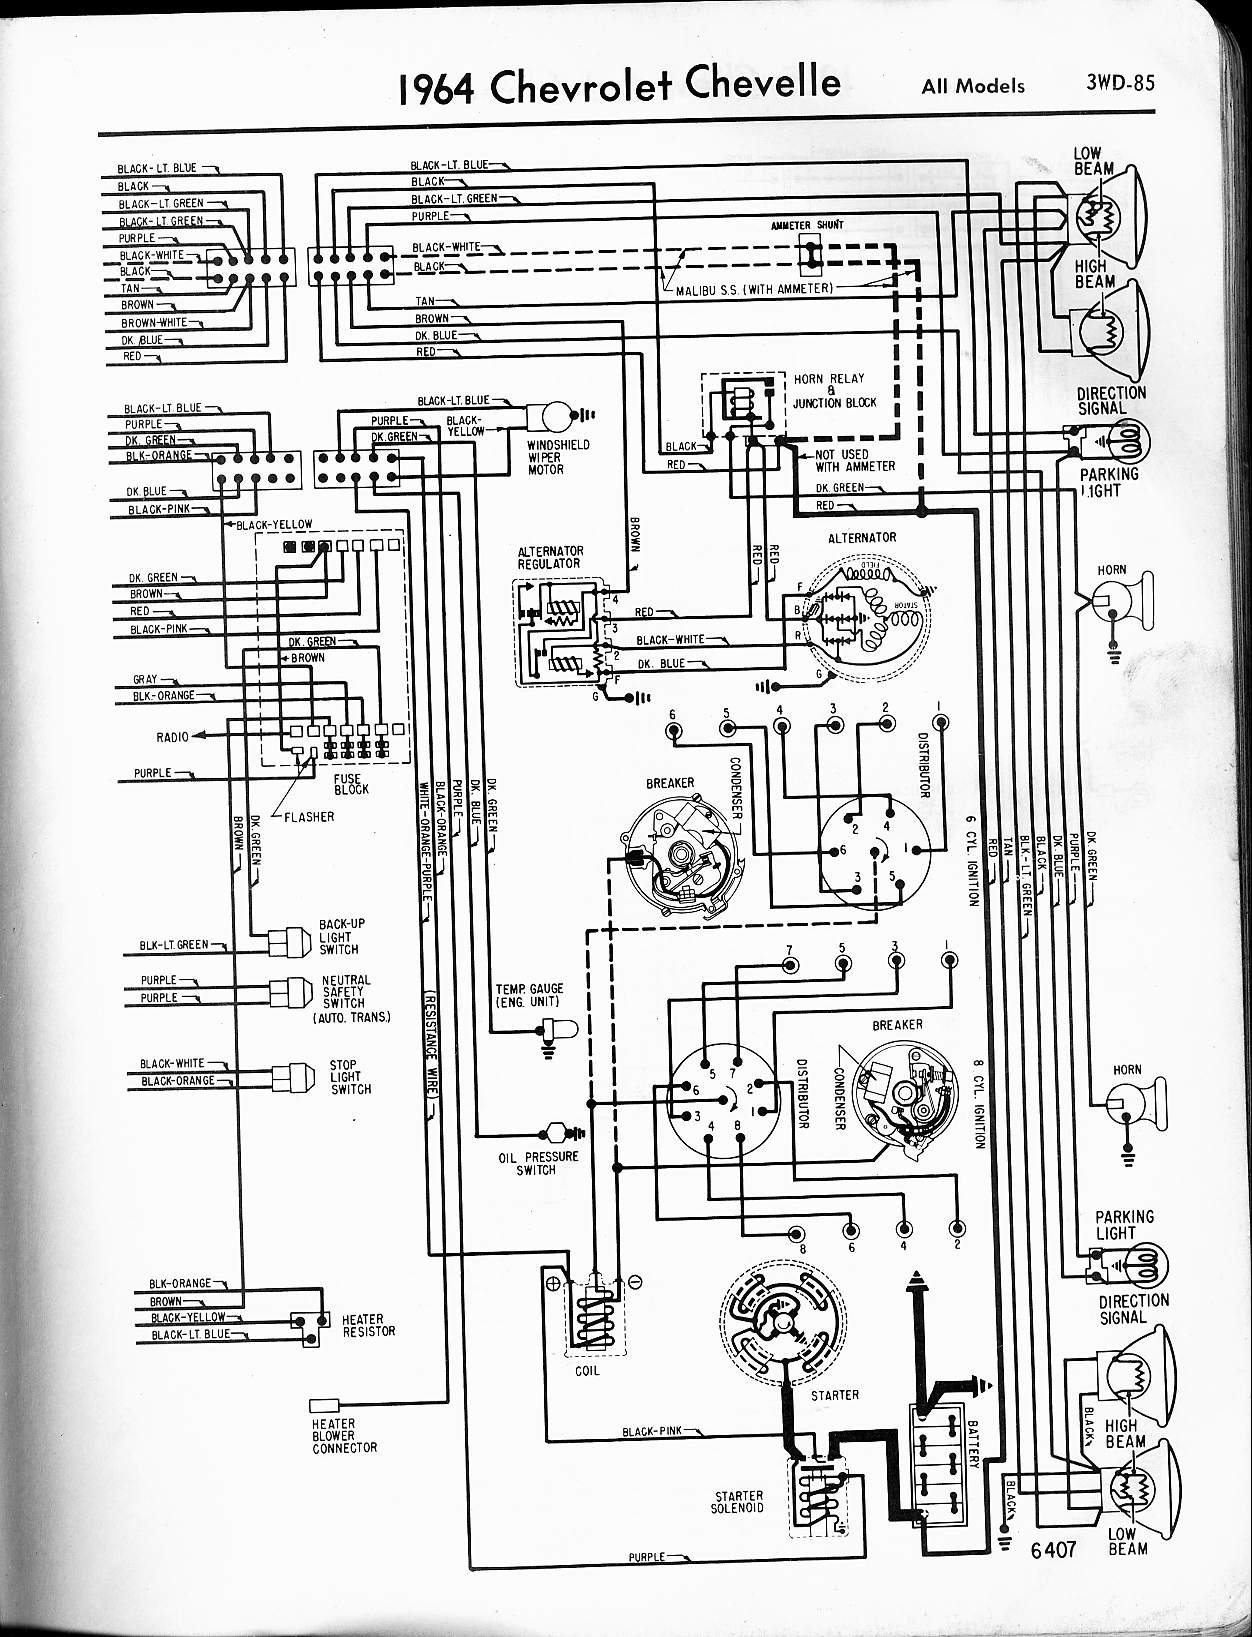 67 chevelle wiring schematic wiring diagram 2019 rh c58 bs drabner de 67 chevelle ignition wiring diagram 67 chevelle ignition wiring diagram